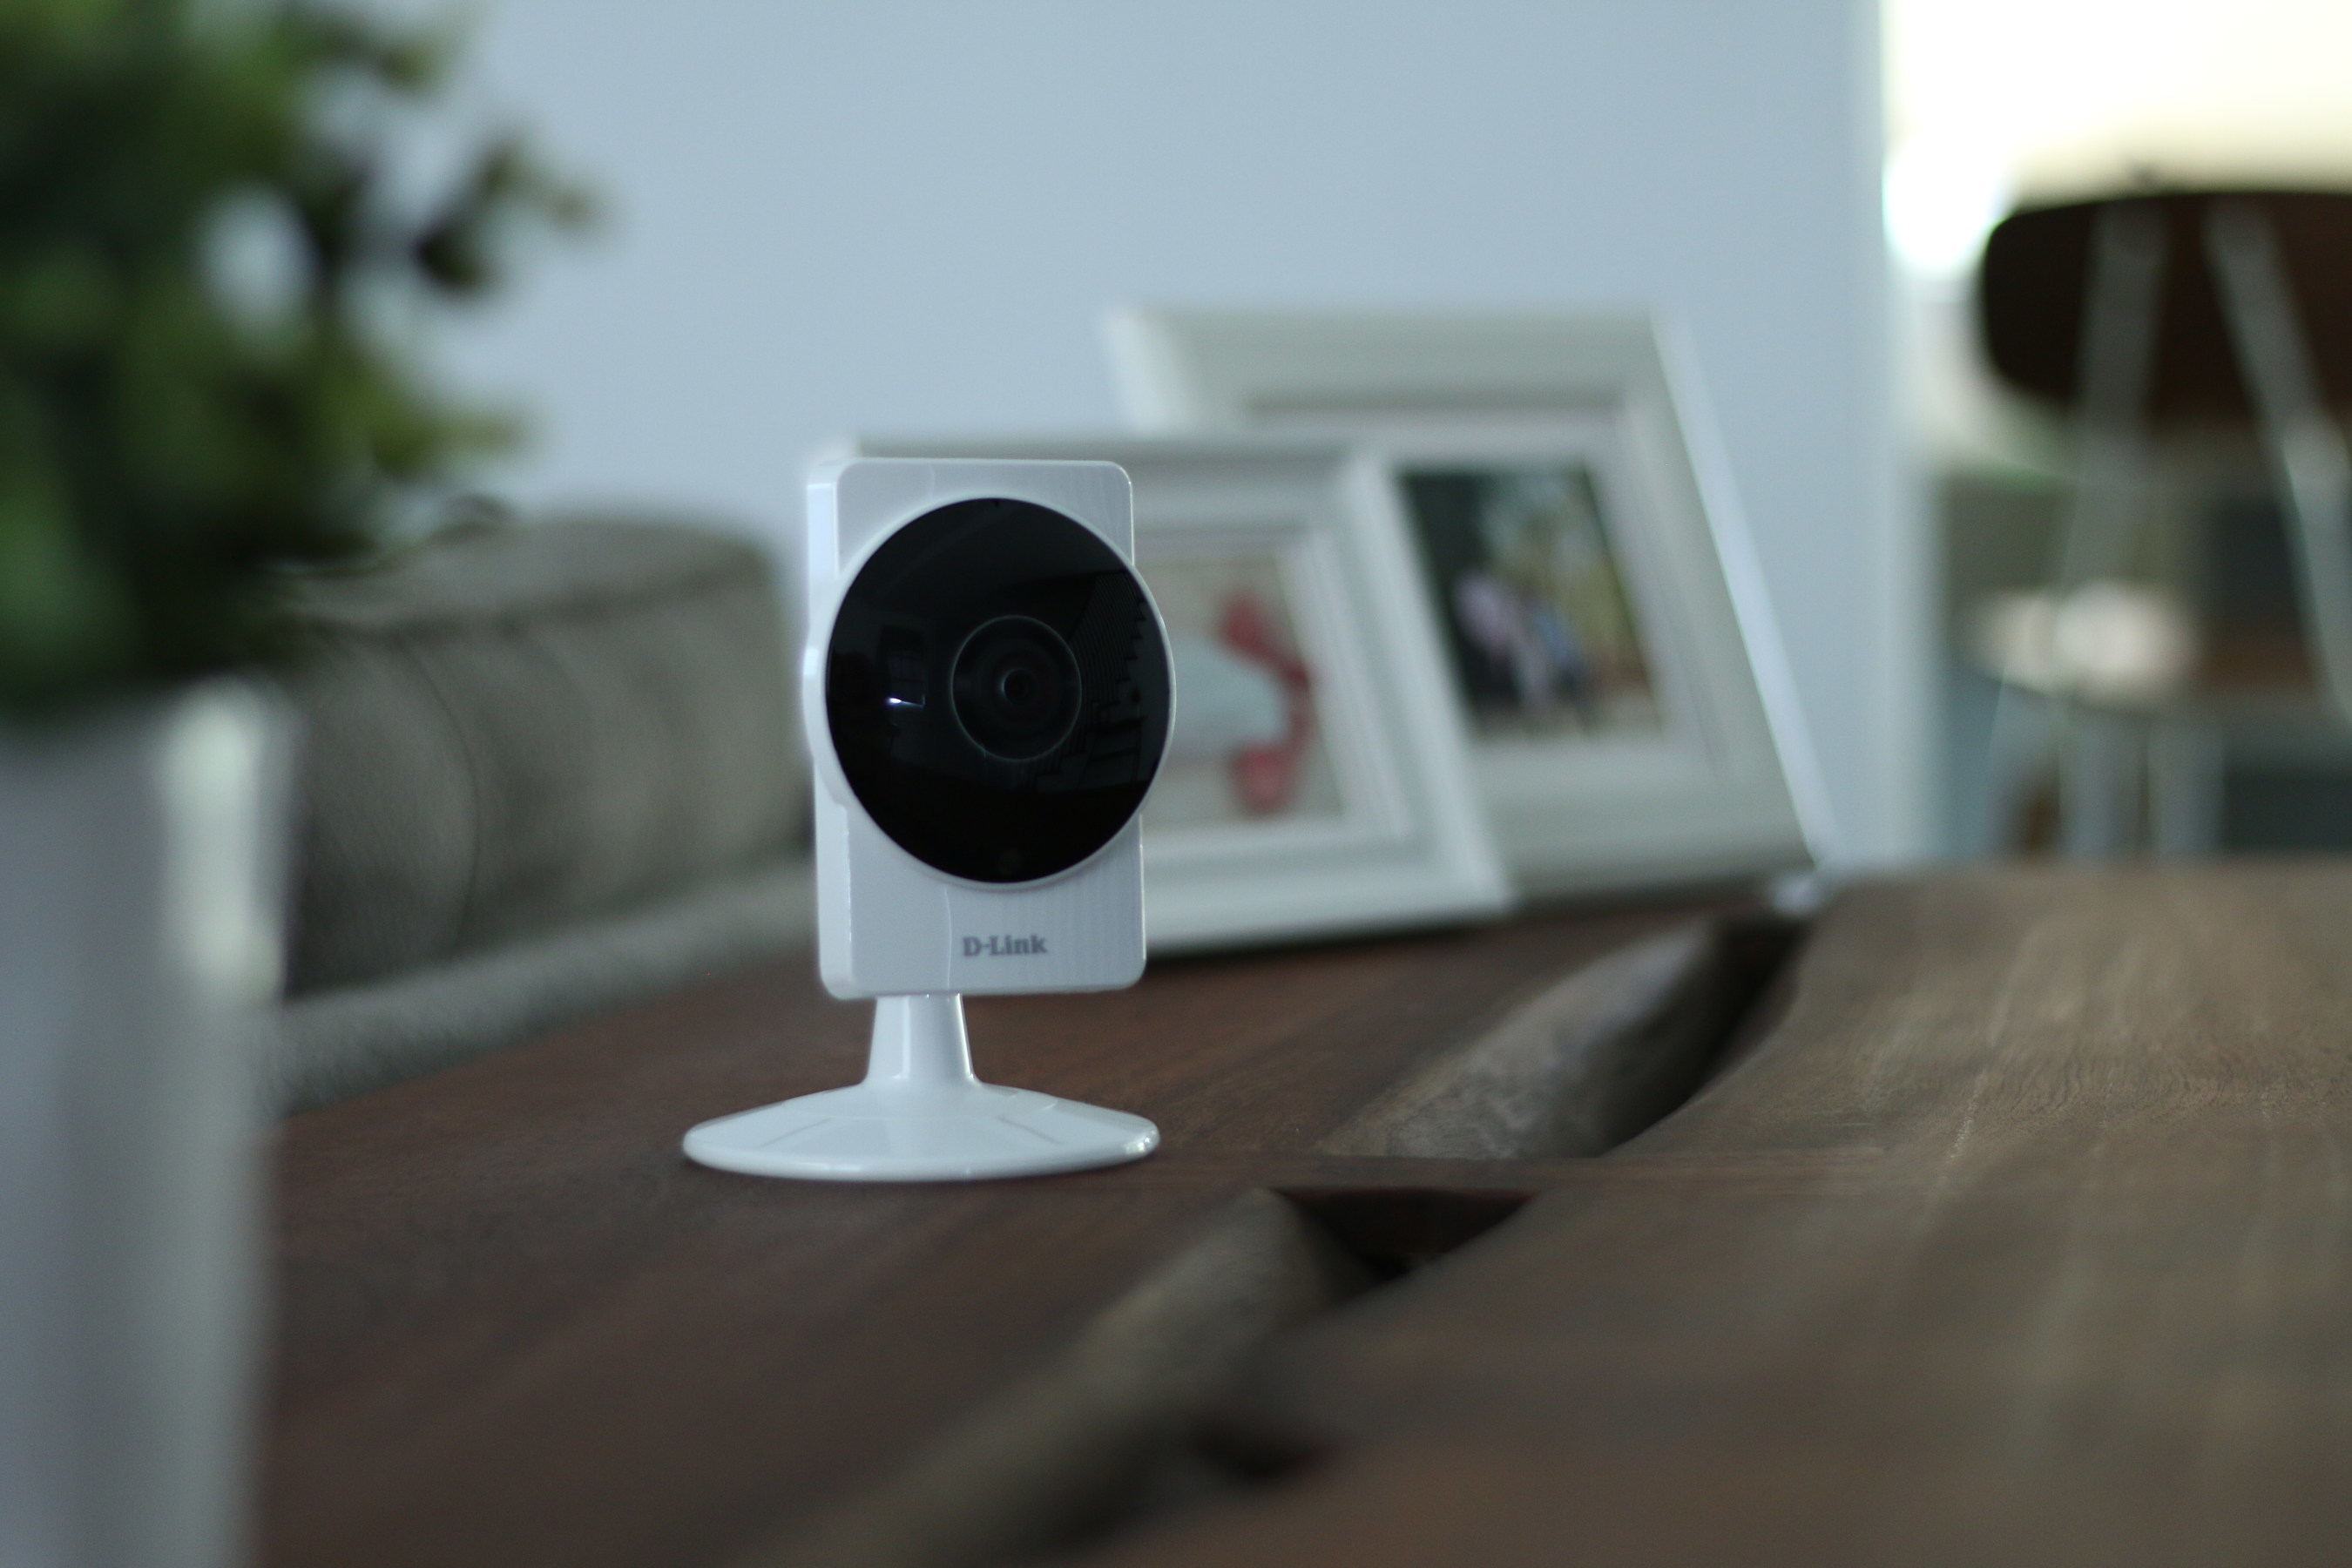 D-Links Adds 180-Degree Wi-Fi Camera to mydlink Connected Home Ecosystem